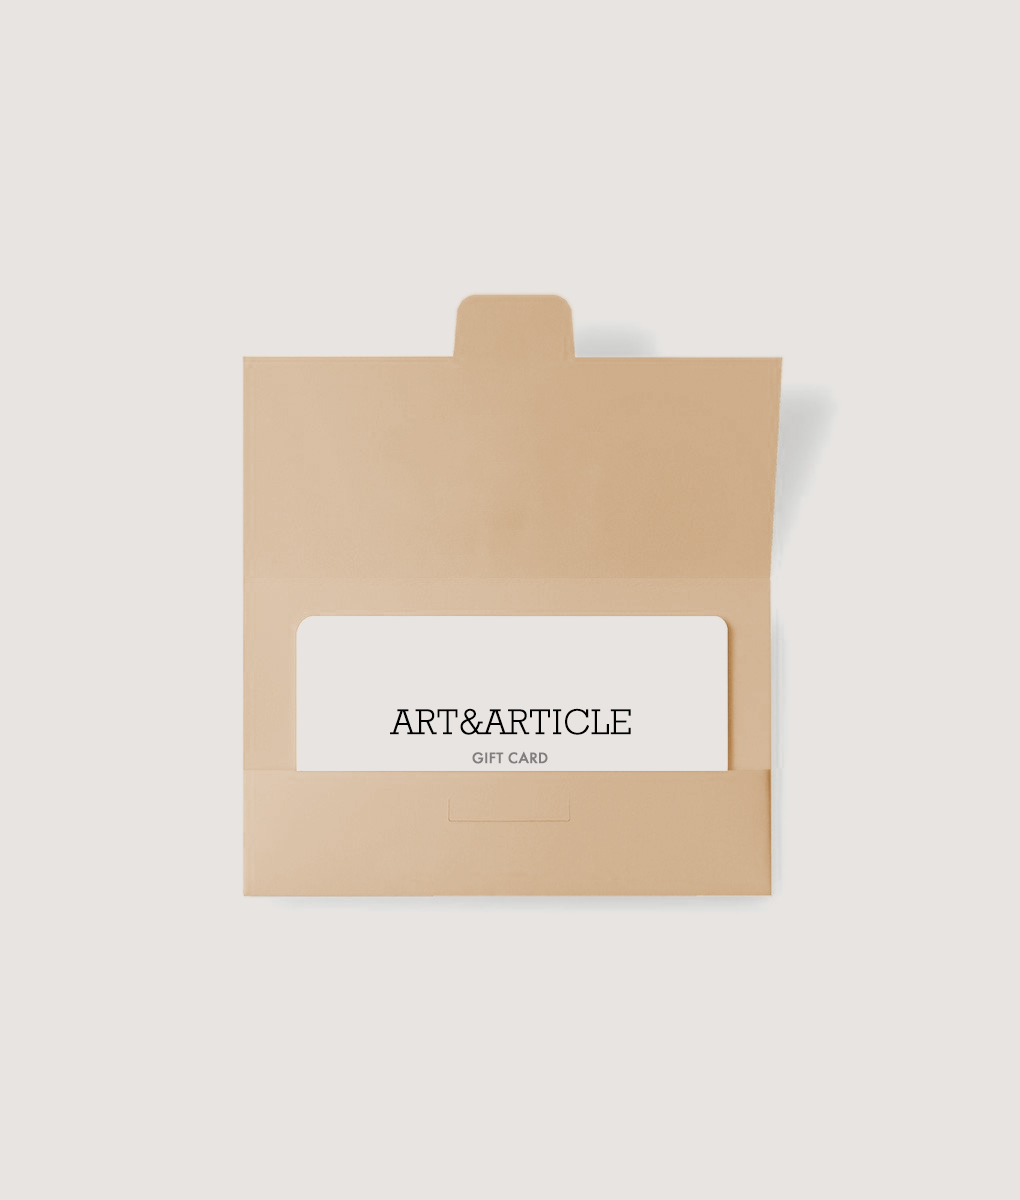 ART&ARTICLE GIFT CARD